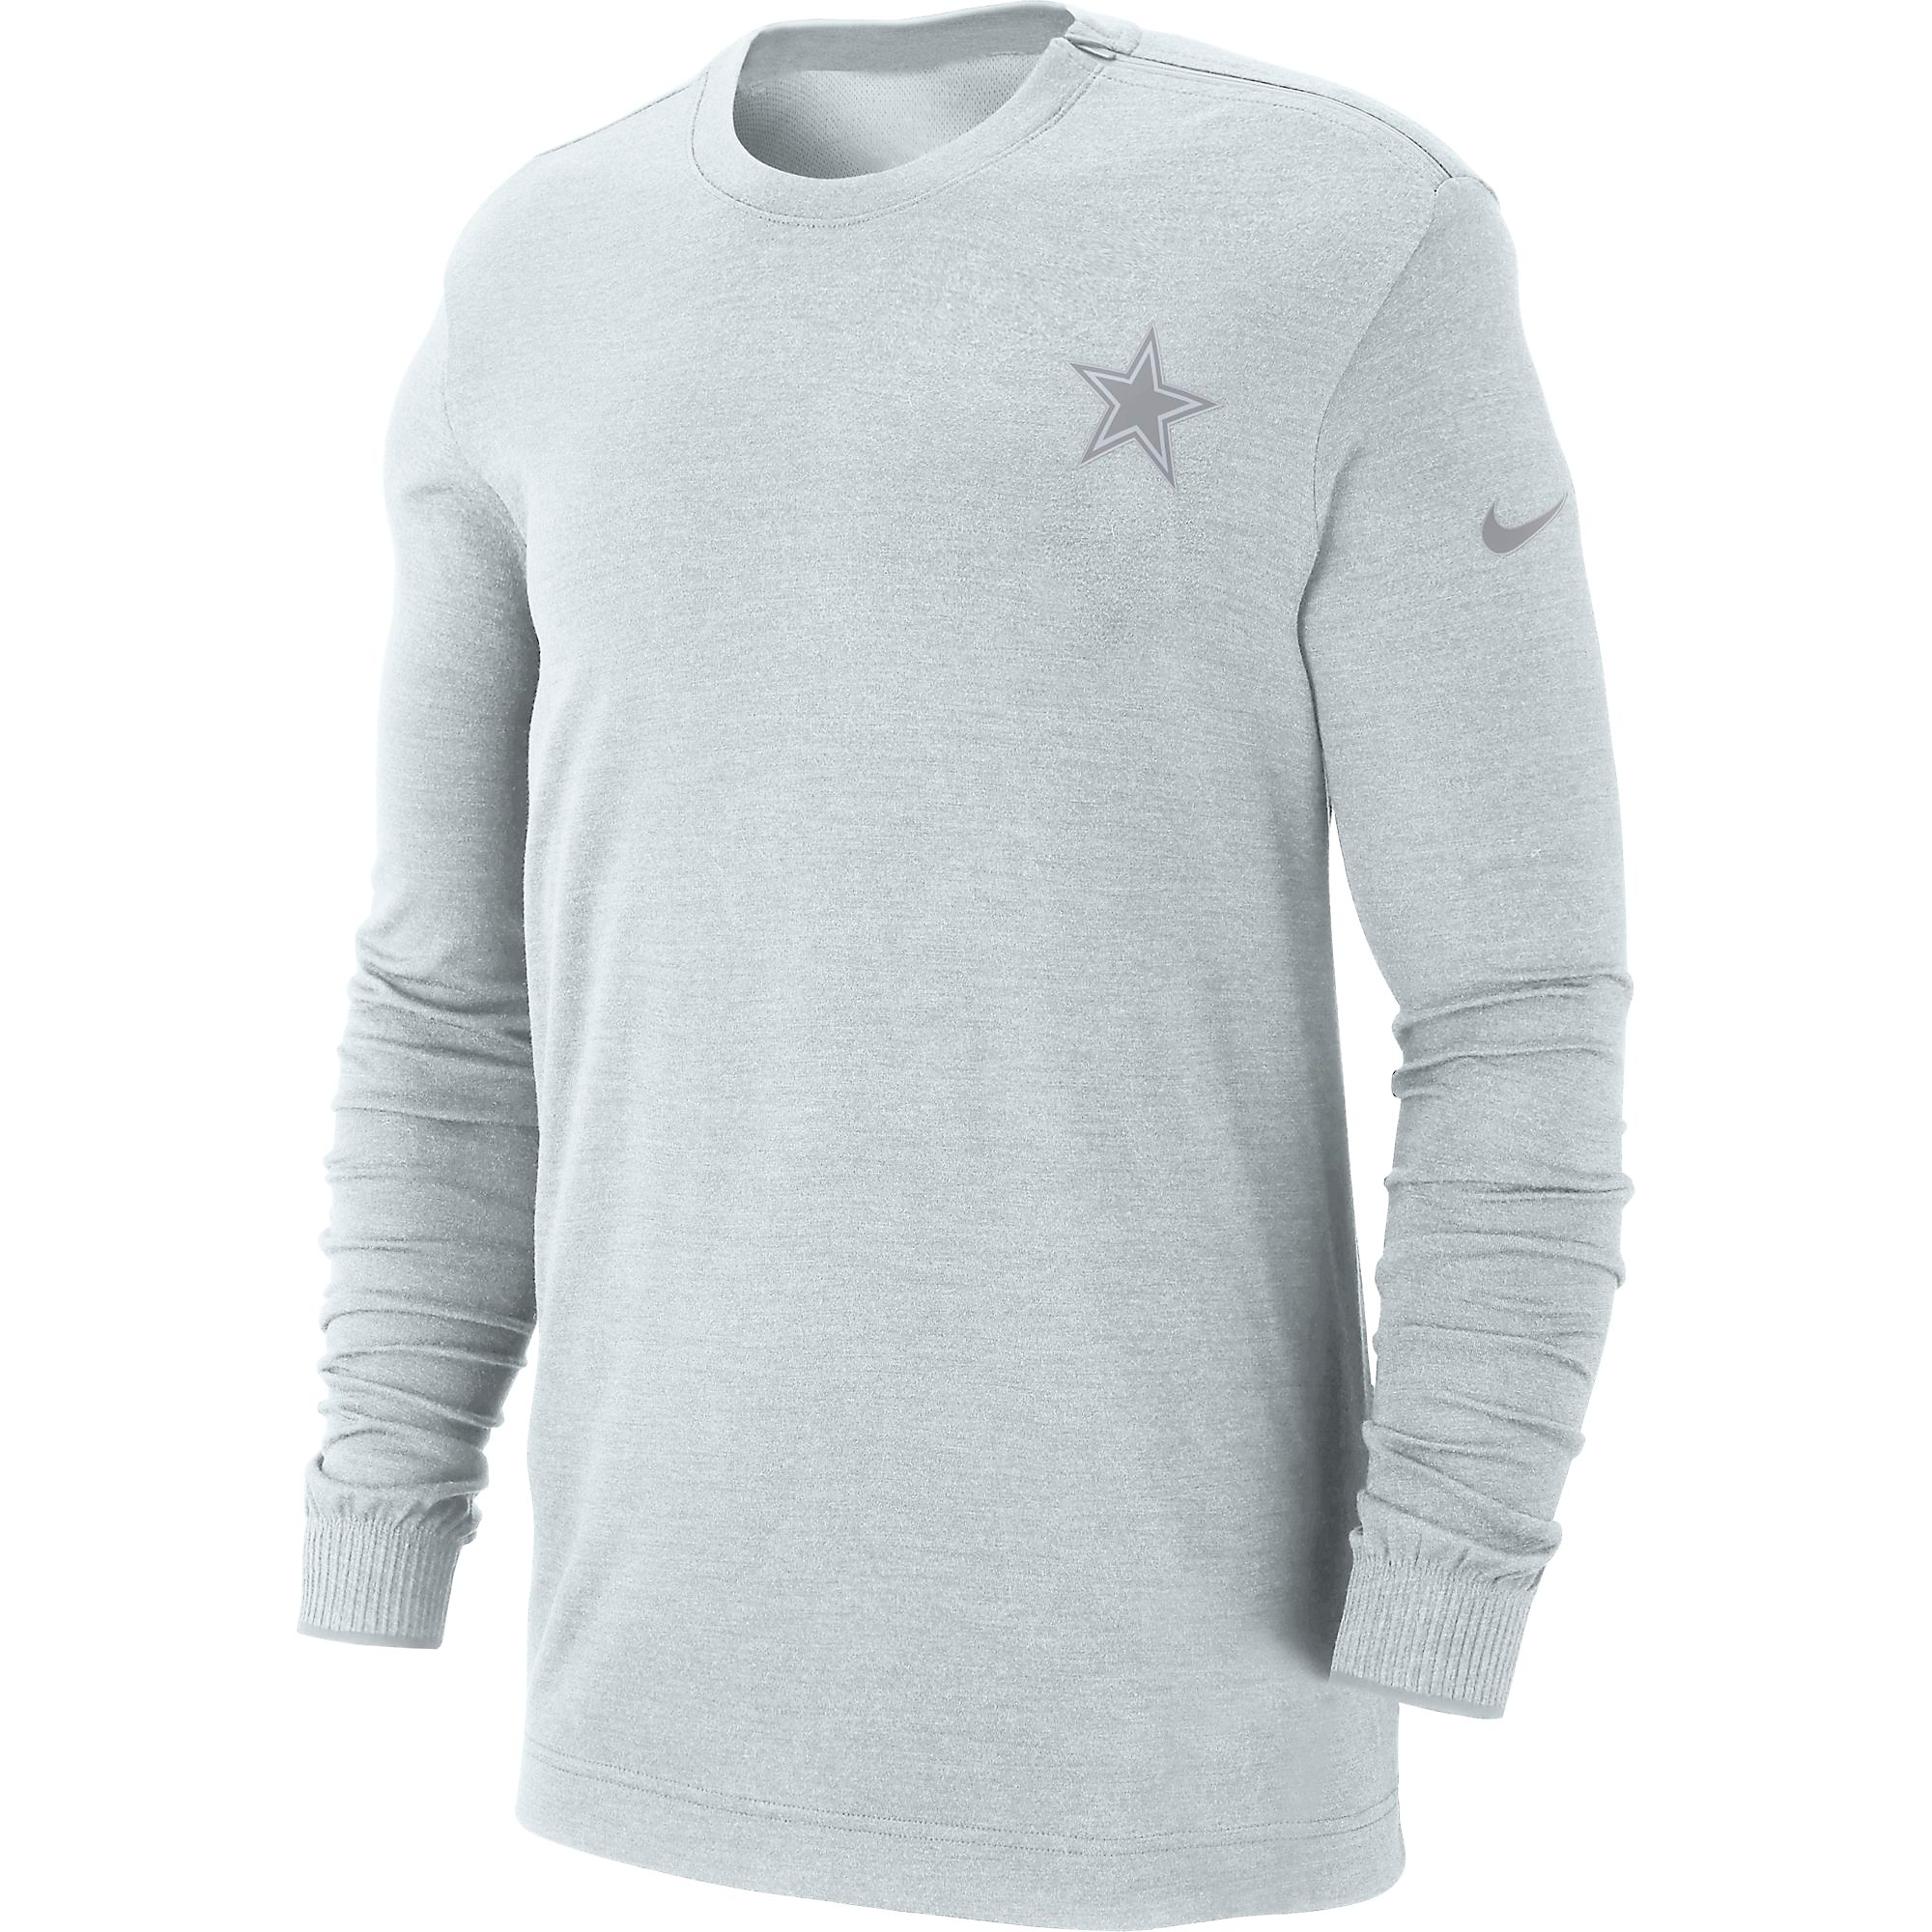 new product 1deac bd052 Dallas Cowboys Nike Sideline Home Coaches Sweater